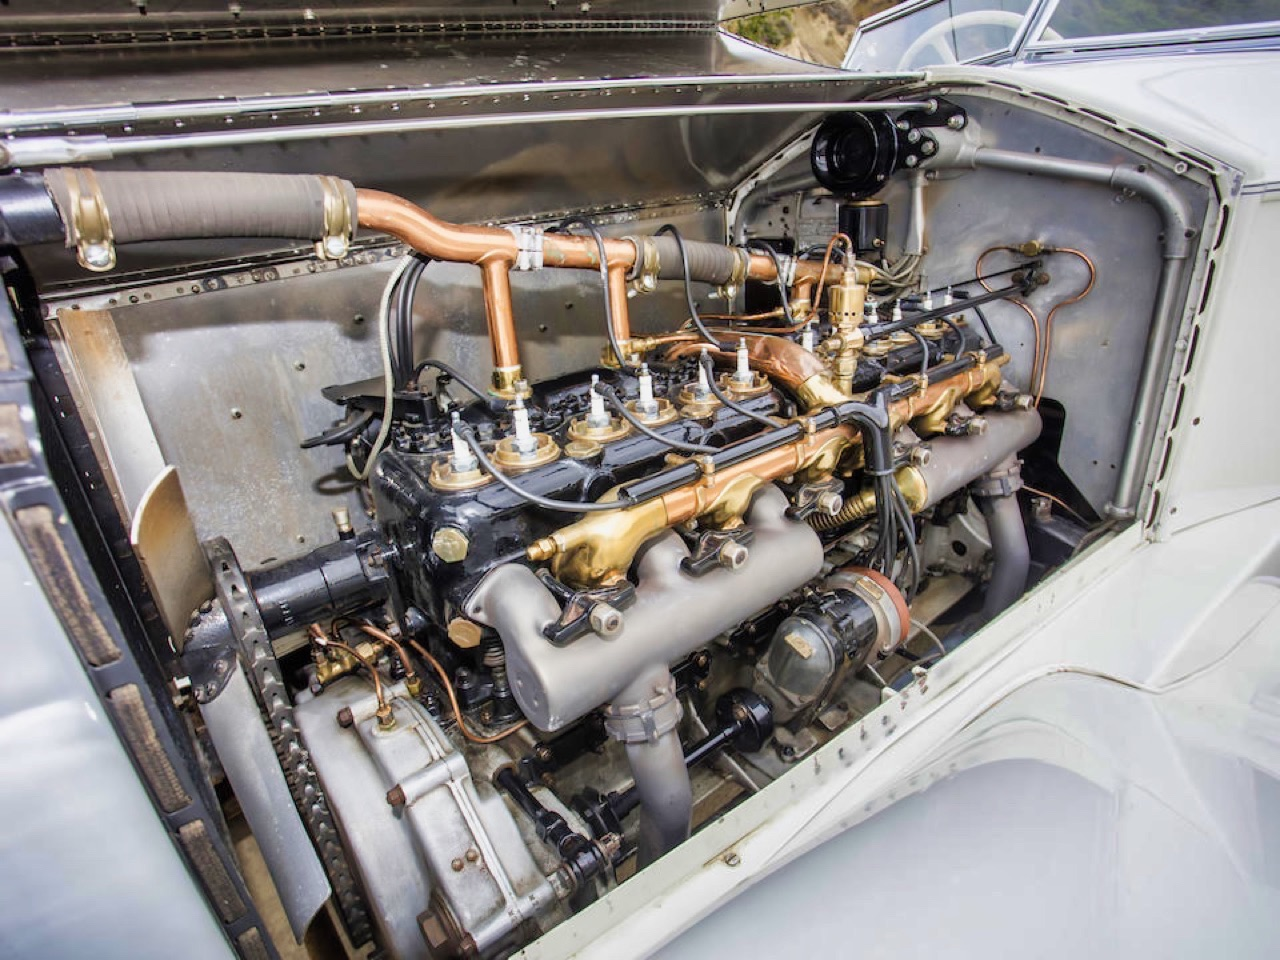 '24 Rolls Royce Silver Ghost Picadilly Special Roadster - Made in America ! 12